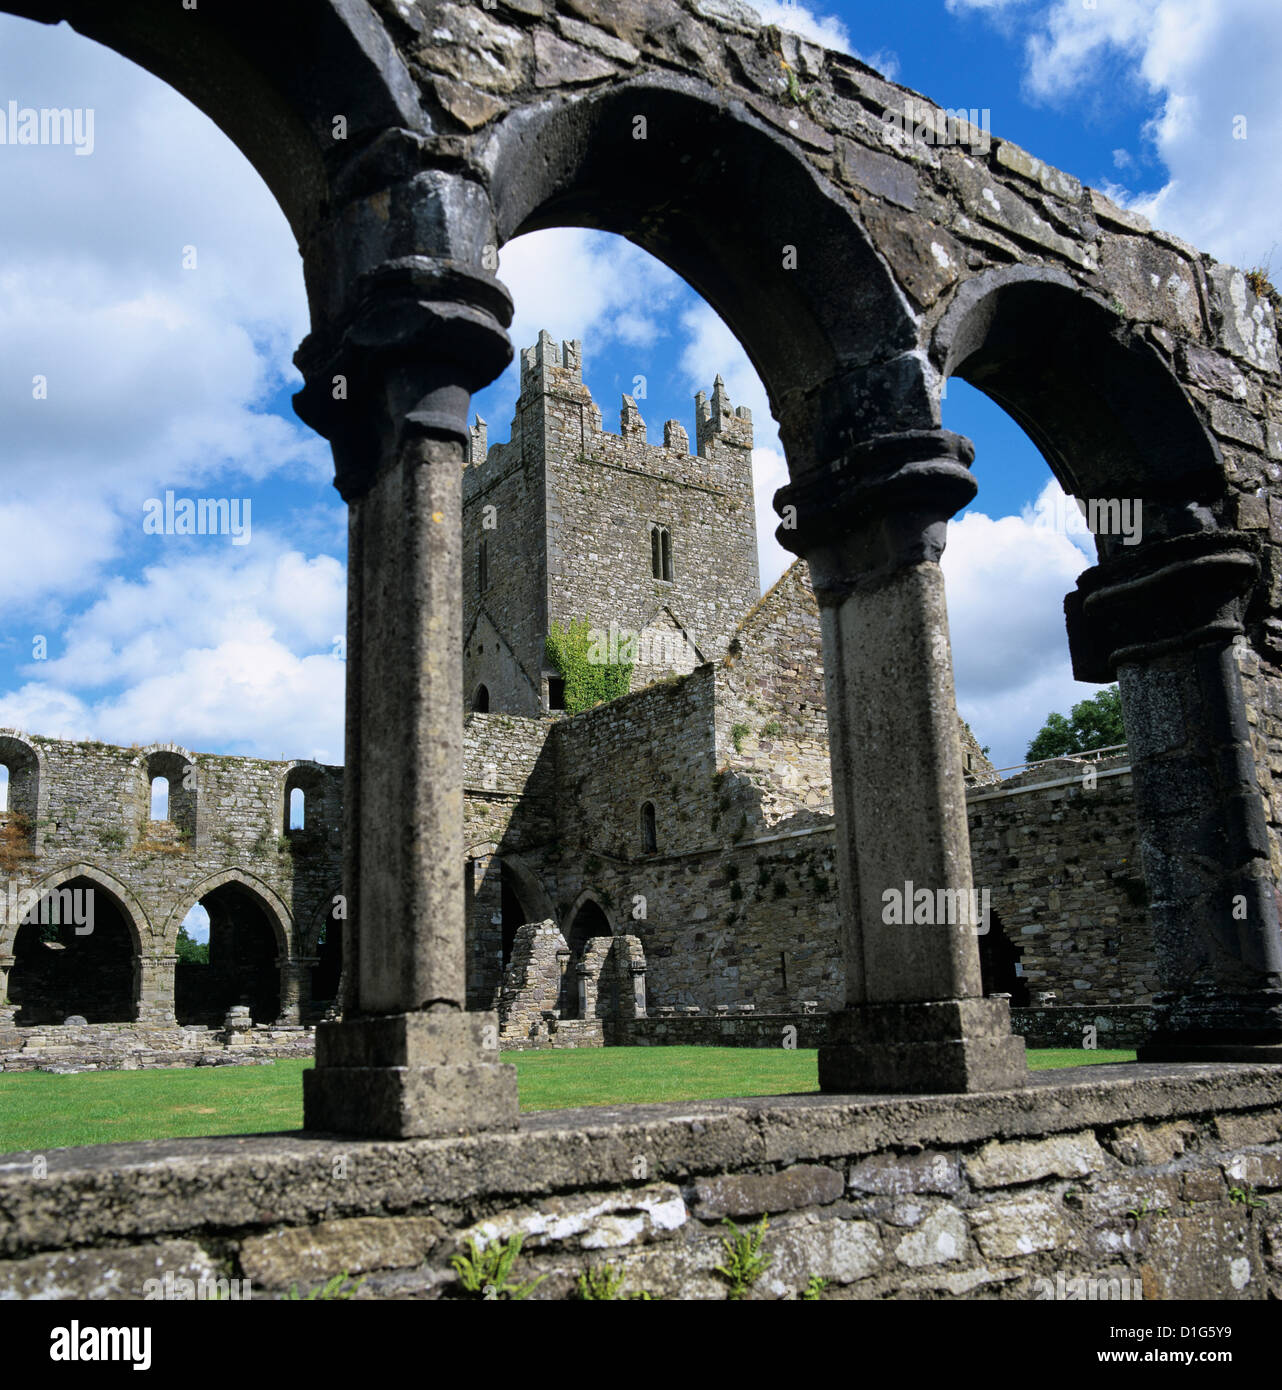 Ruins of Cistercian Jerpoint Abbey, Jerpoint, County Kilkenny, Leinster, Republic of Ireland, Europe - Stock Image